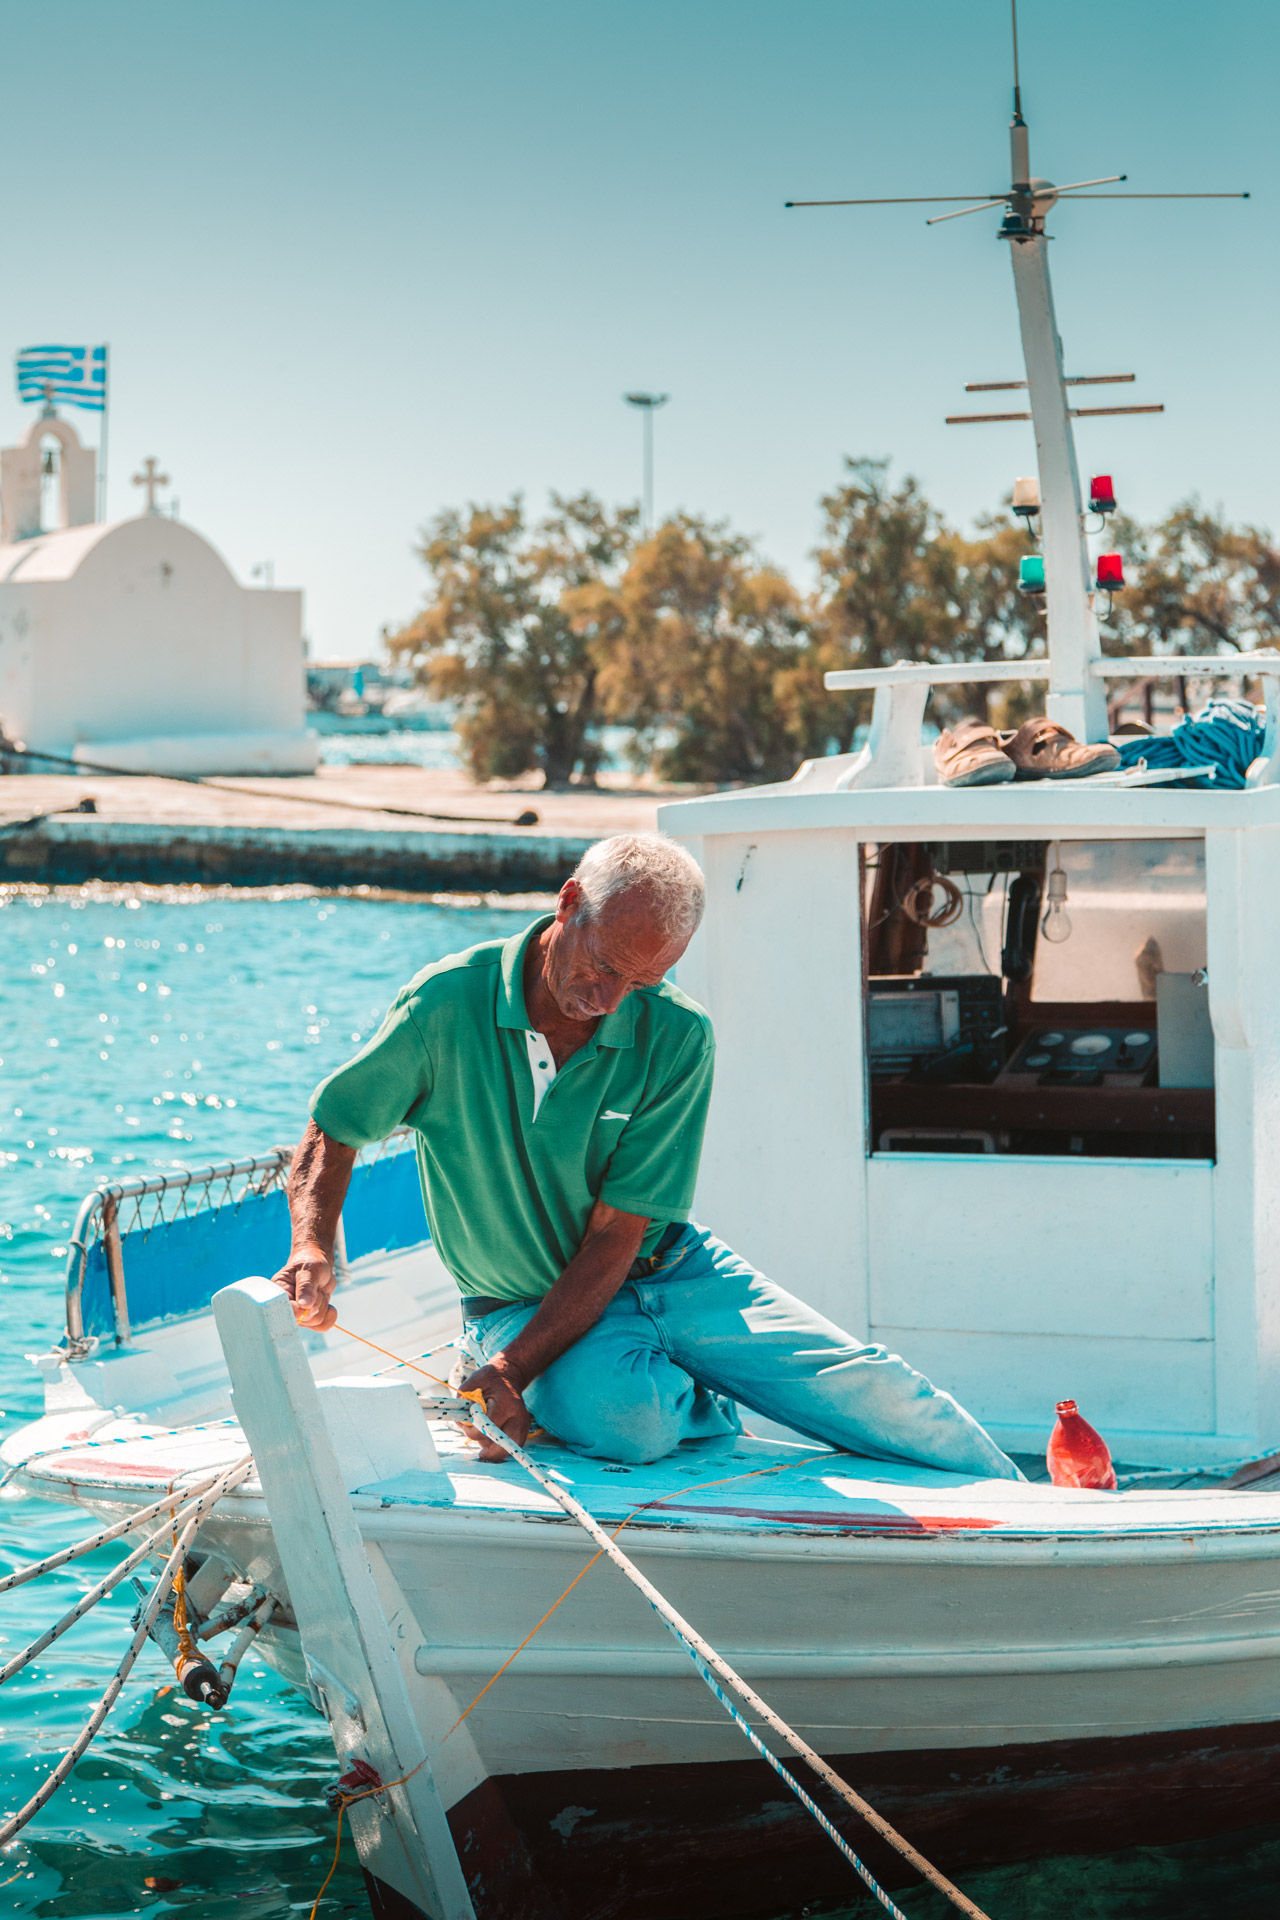 Local fisherman at the port of Naxos, doing what he knows best